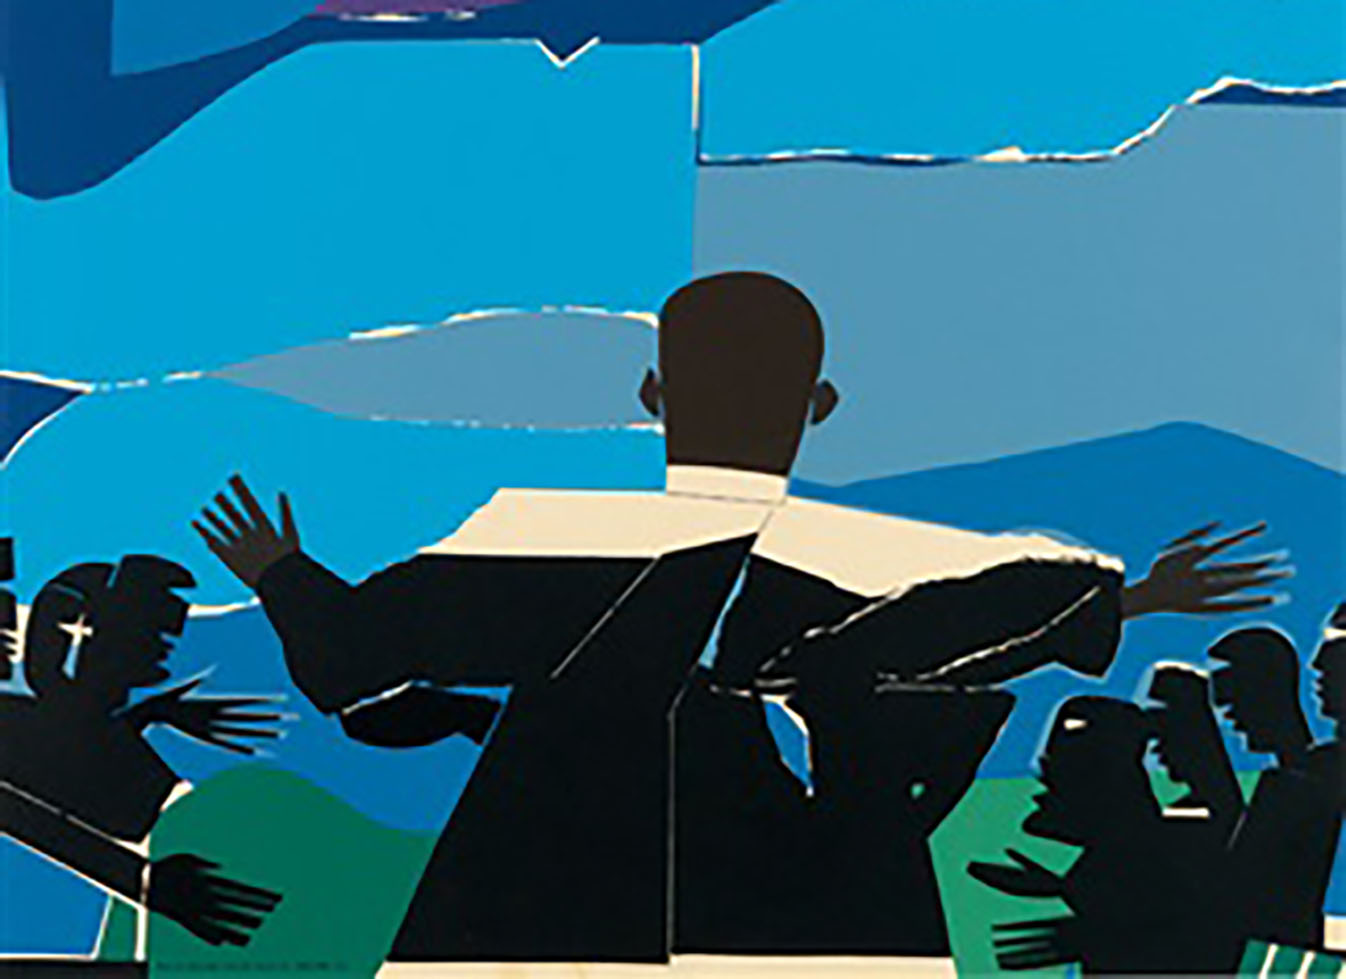 Martin Luther King Jr. - Mountain Top , 1968, by Romare Bearden